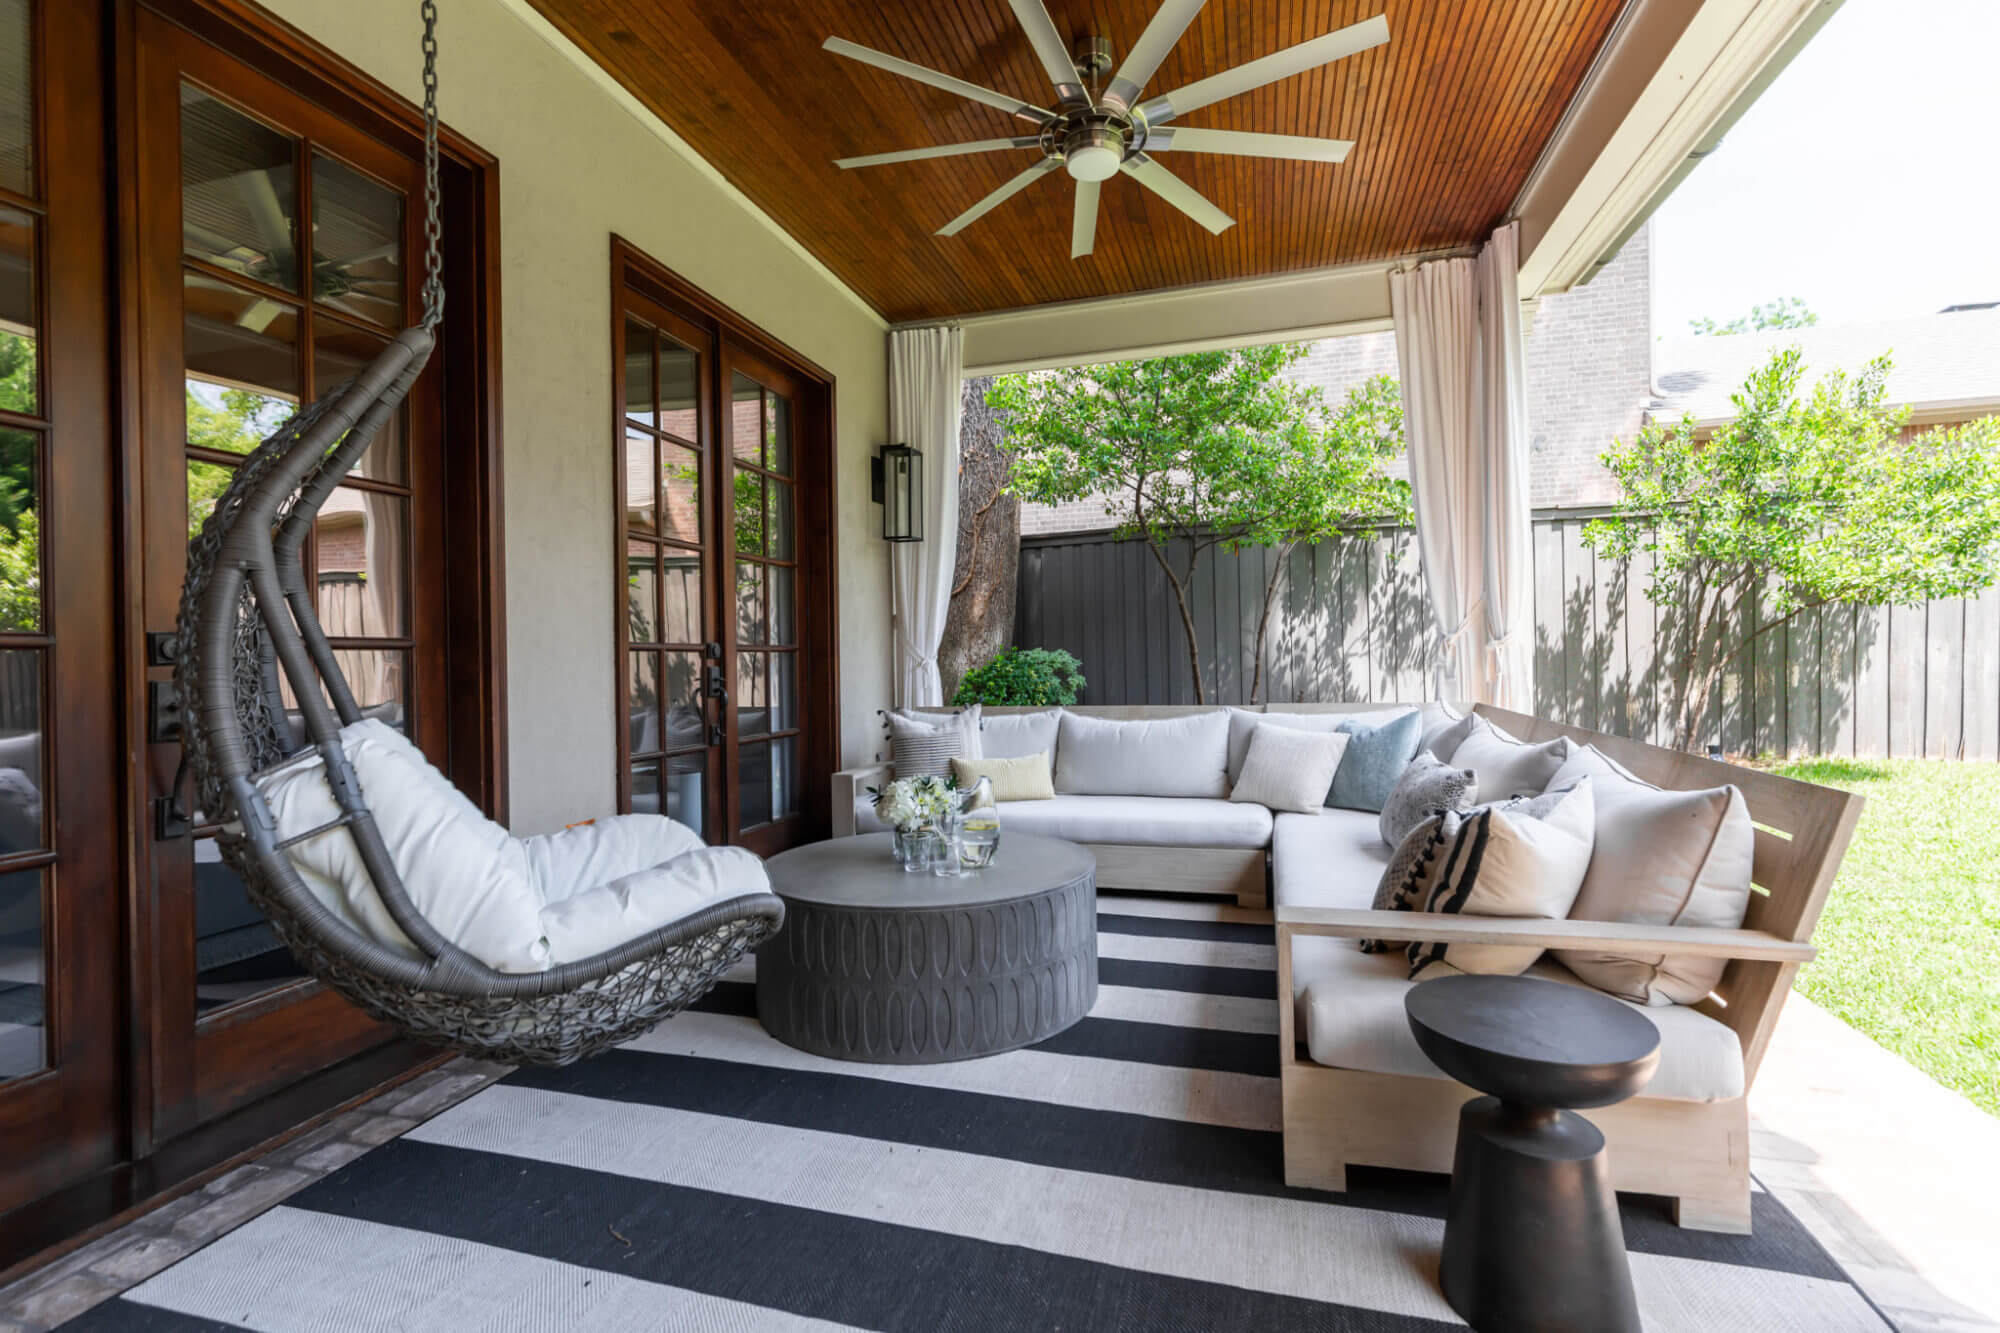 Outdoor Patio Decor | Highland Park Home | ML Interiors Group | Dallas Interior Design